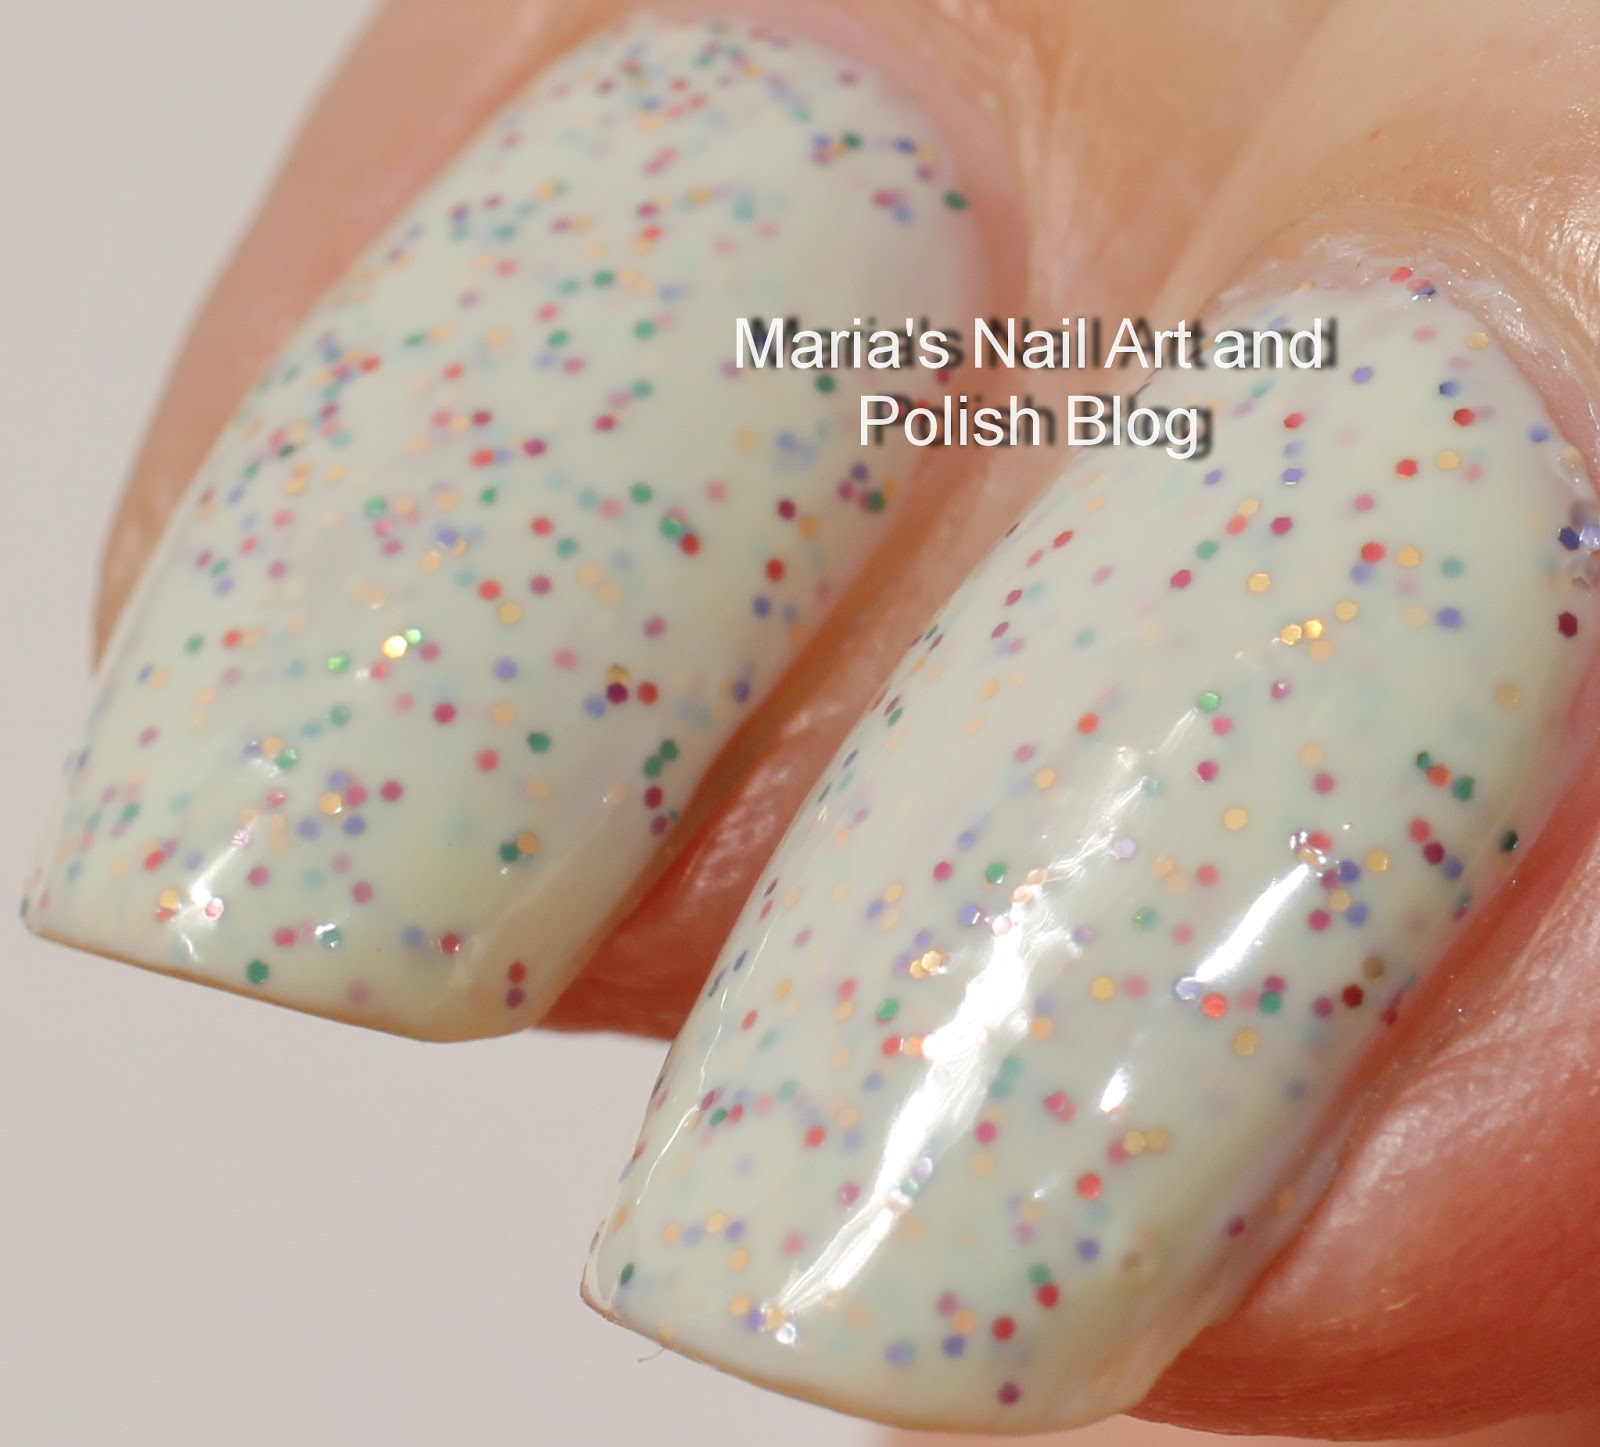 Marias Nail Art And Polish Blog Flushed With Stripes And: Marias Nail Art And Polish Blog: Random Manhattan Swatches